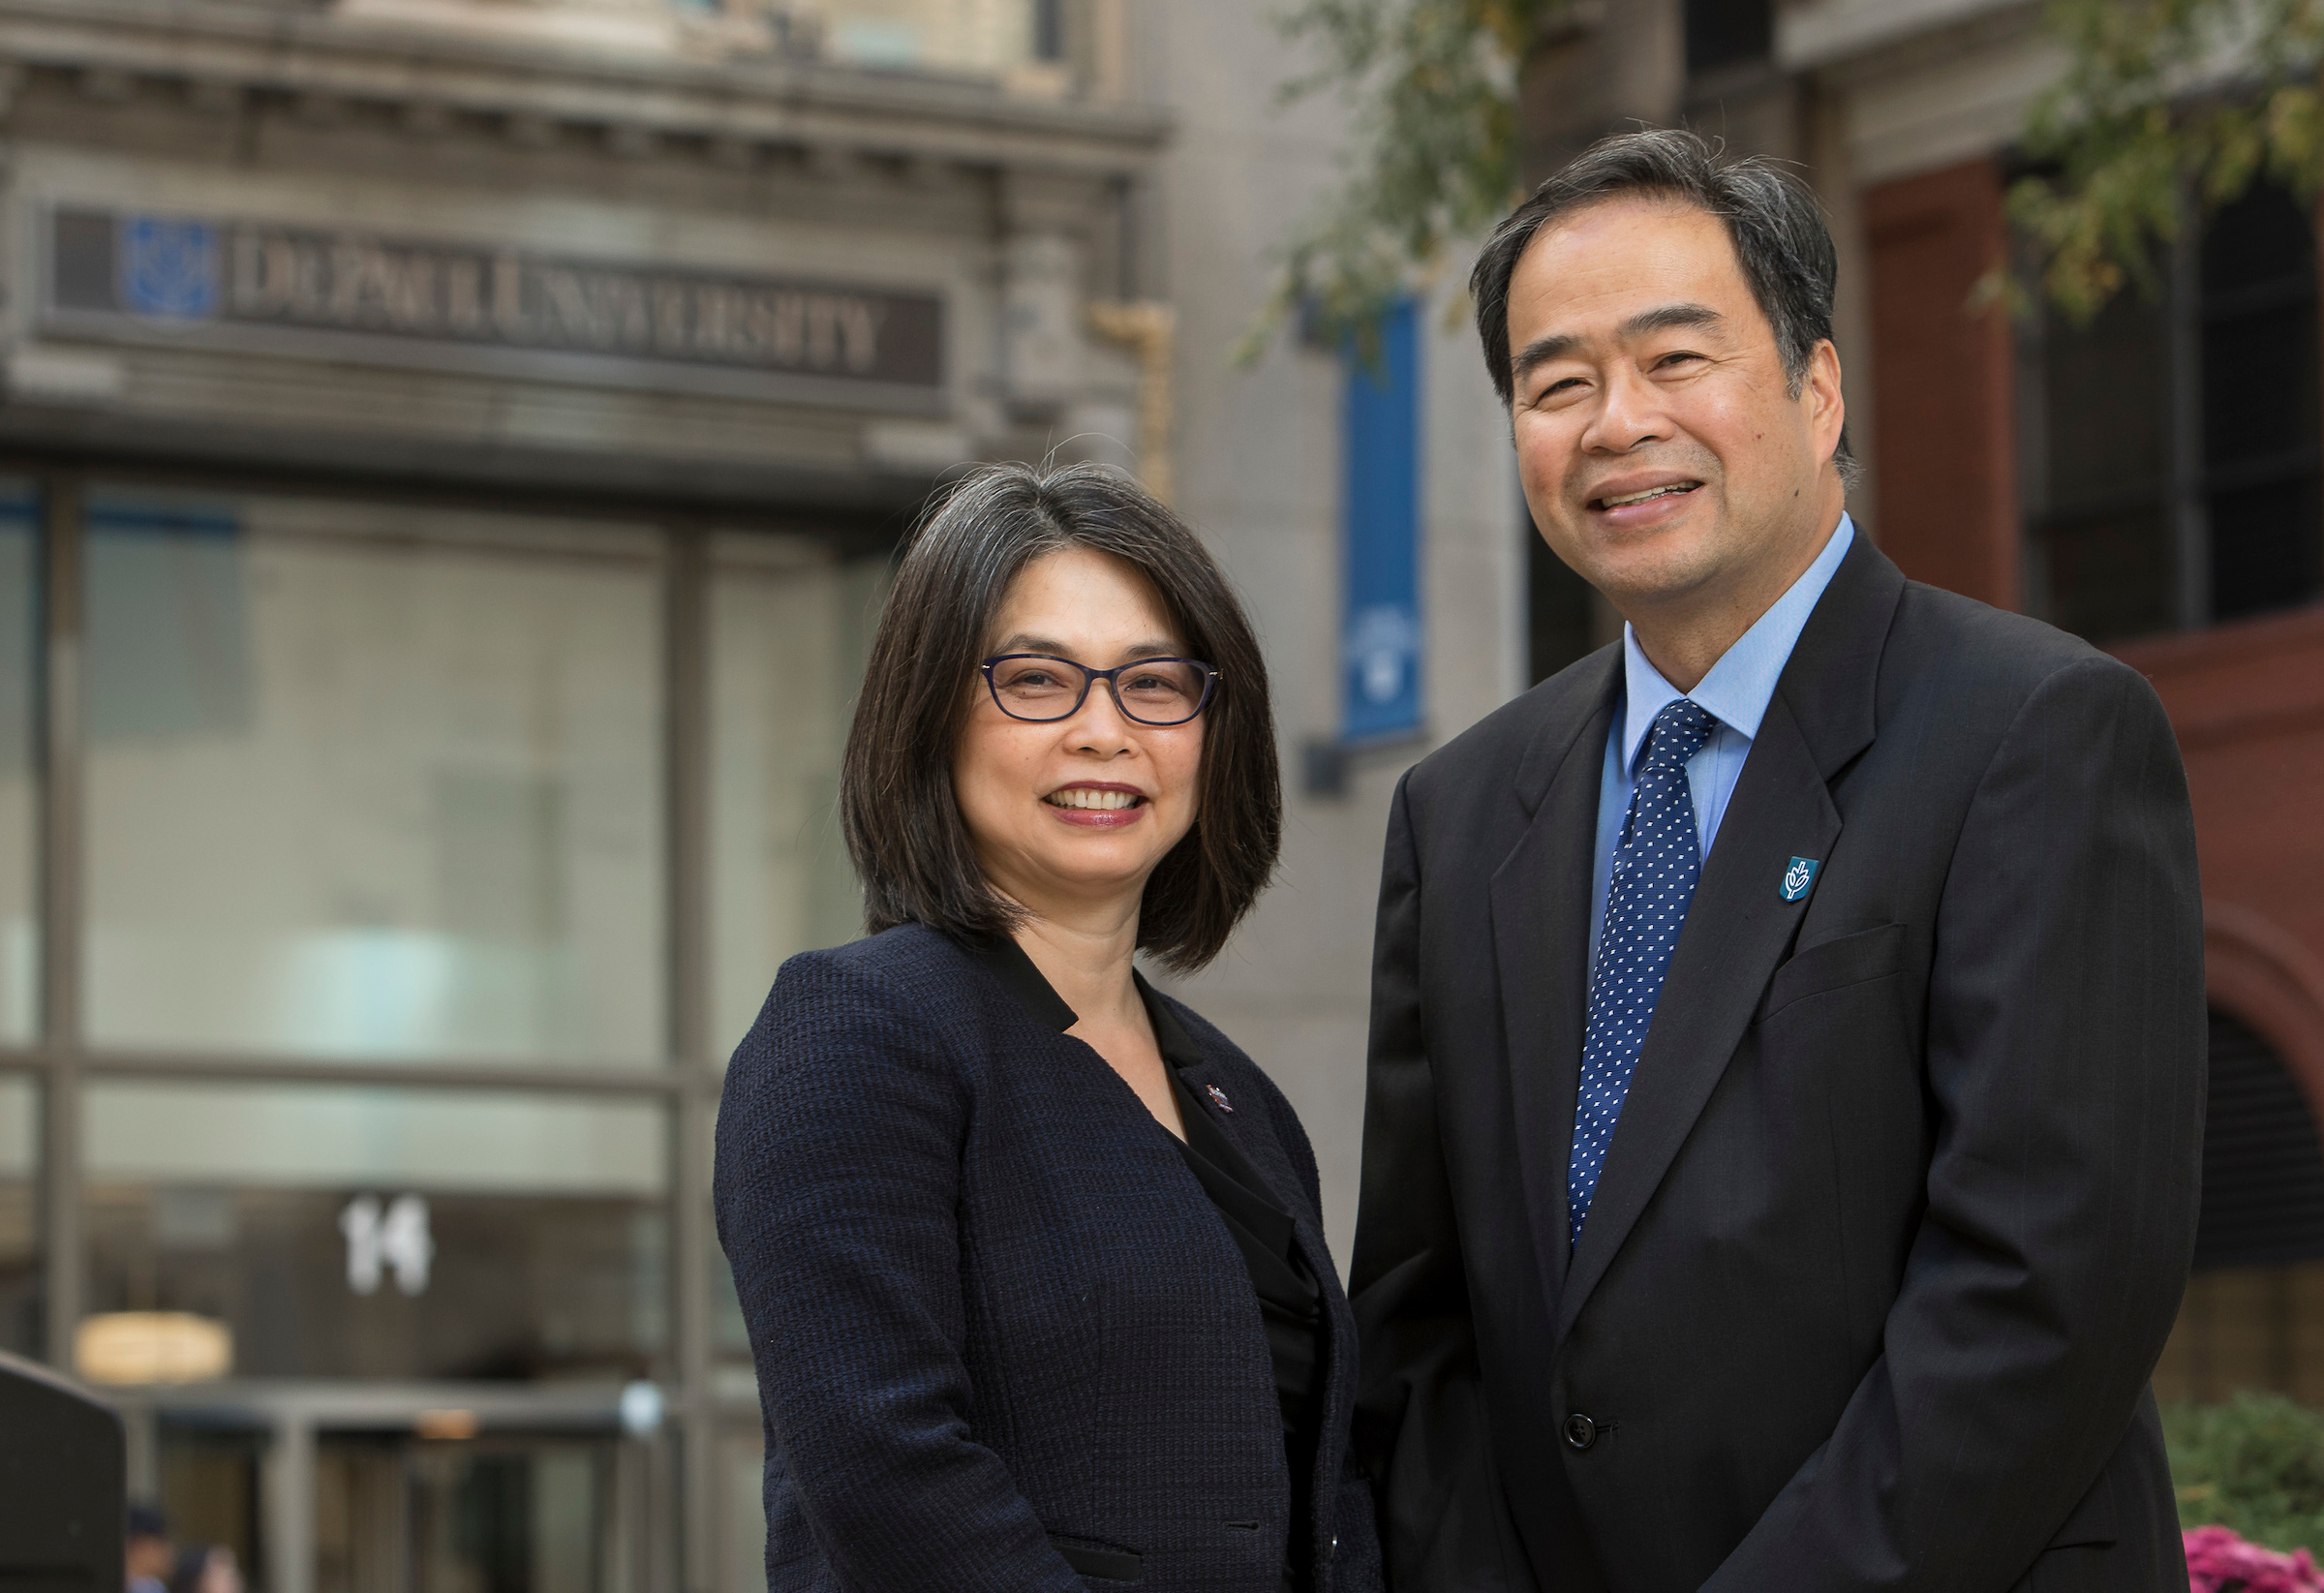 Portrait of A. Gabriel Esteban, Ph.D., president of DePaul University in Chicago, and his wife, Josephine.